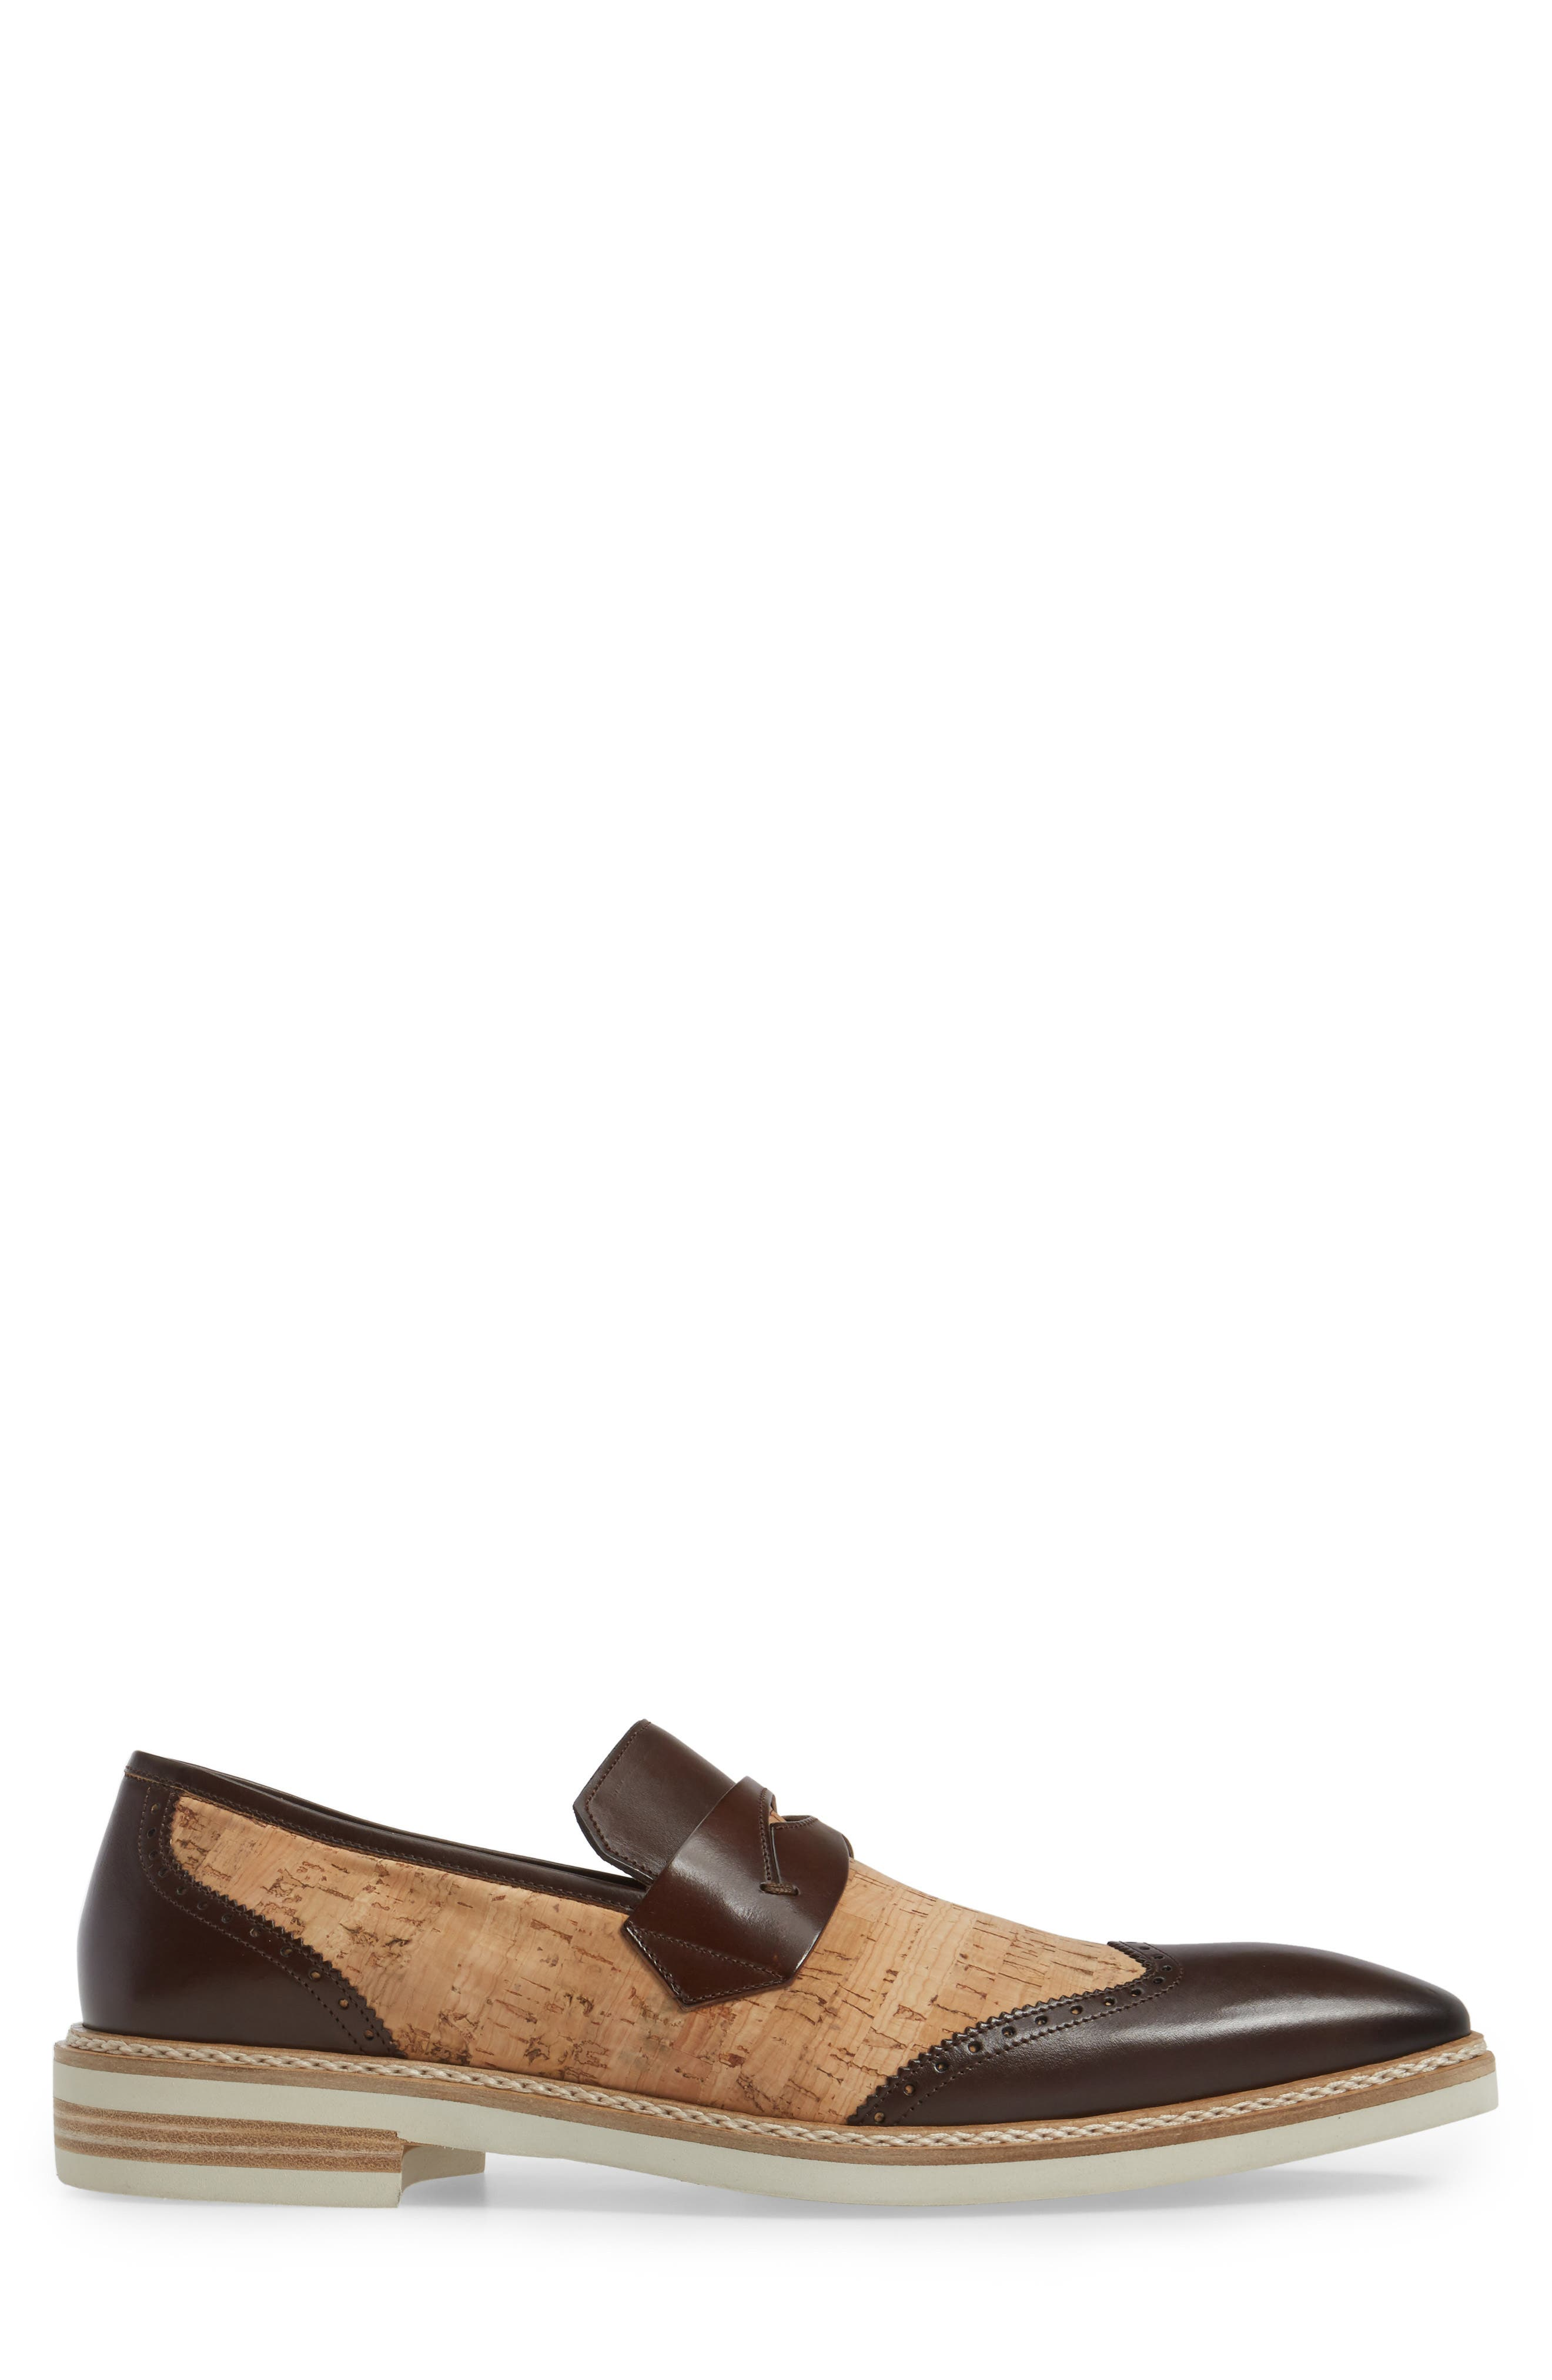 Redi Venetian Loafer,                             Alternate thumbnail 3, color,                             200